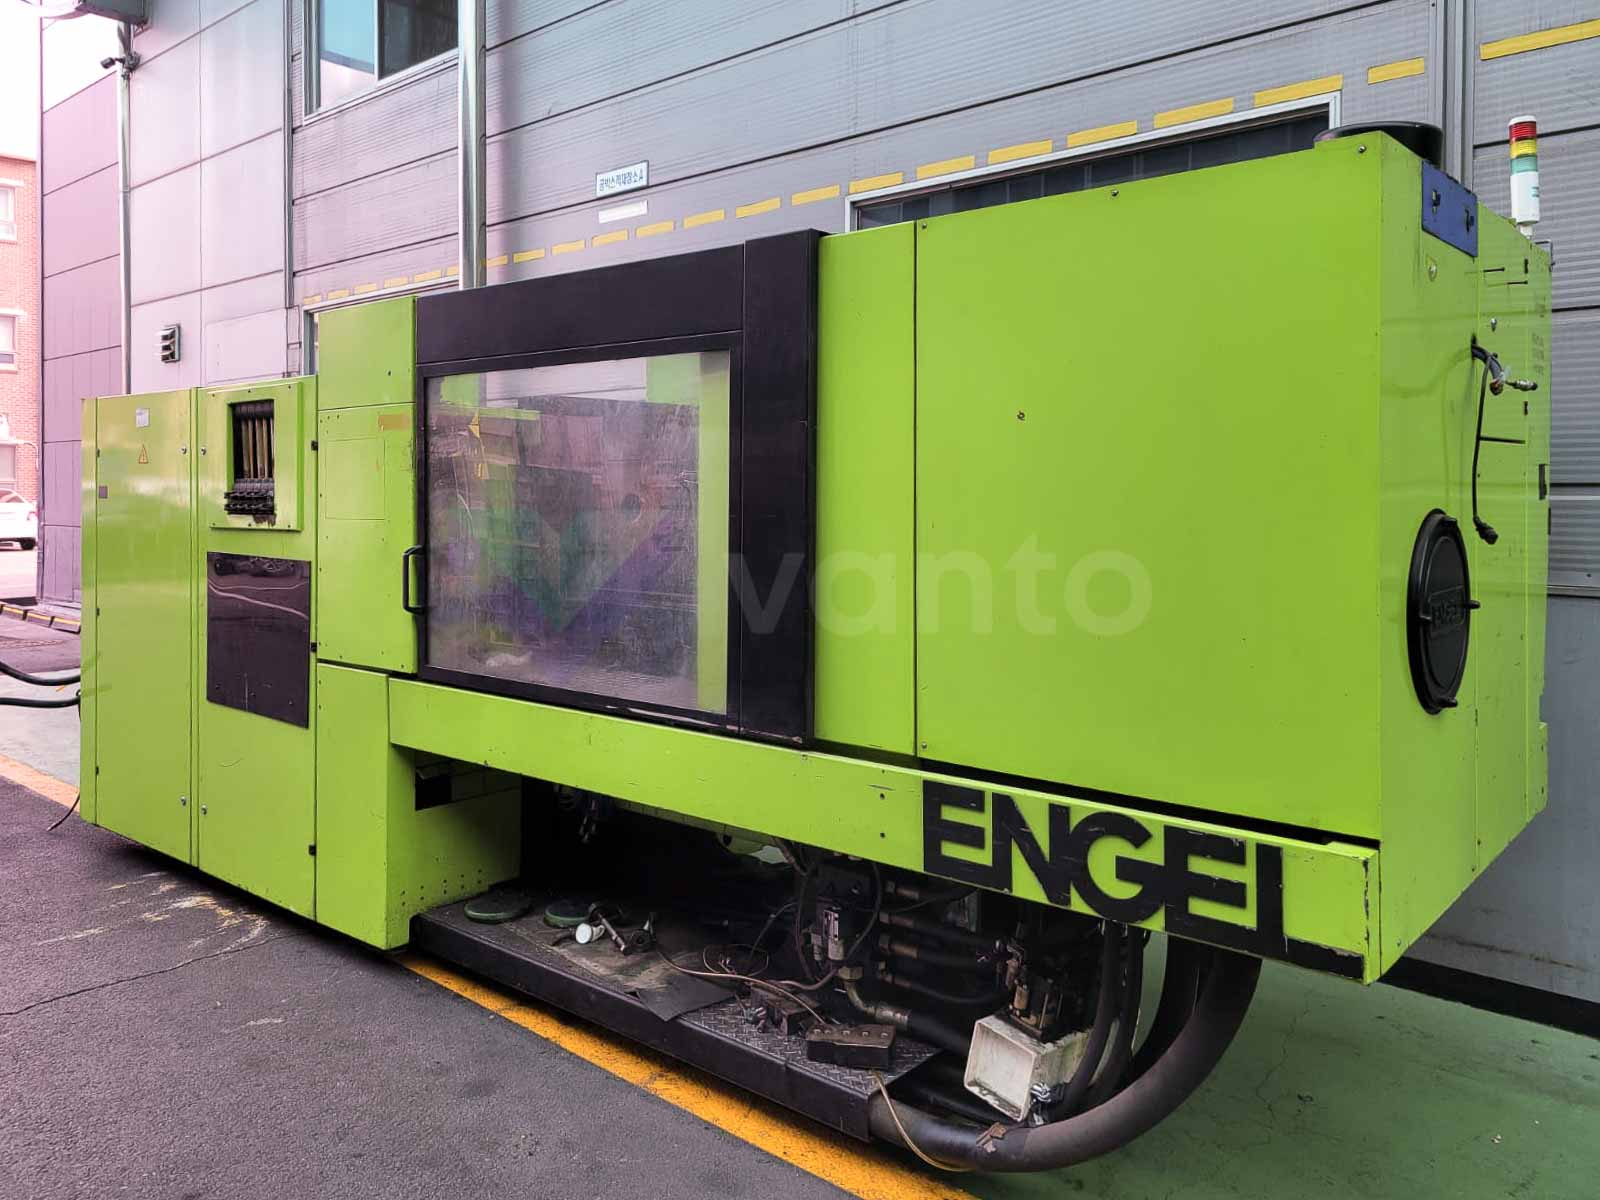 ENGEL VICTORY VC 500 / 150 TECH PRO 150t injection molding machine (2003) id10532